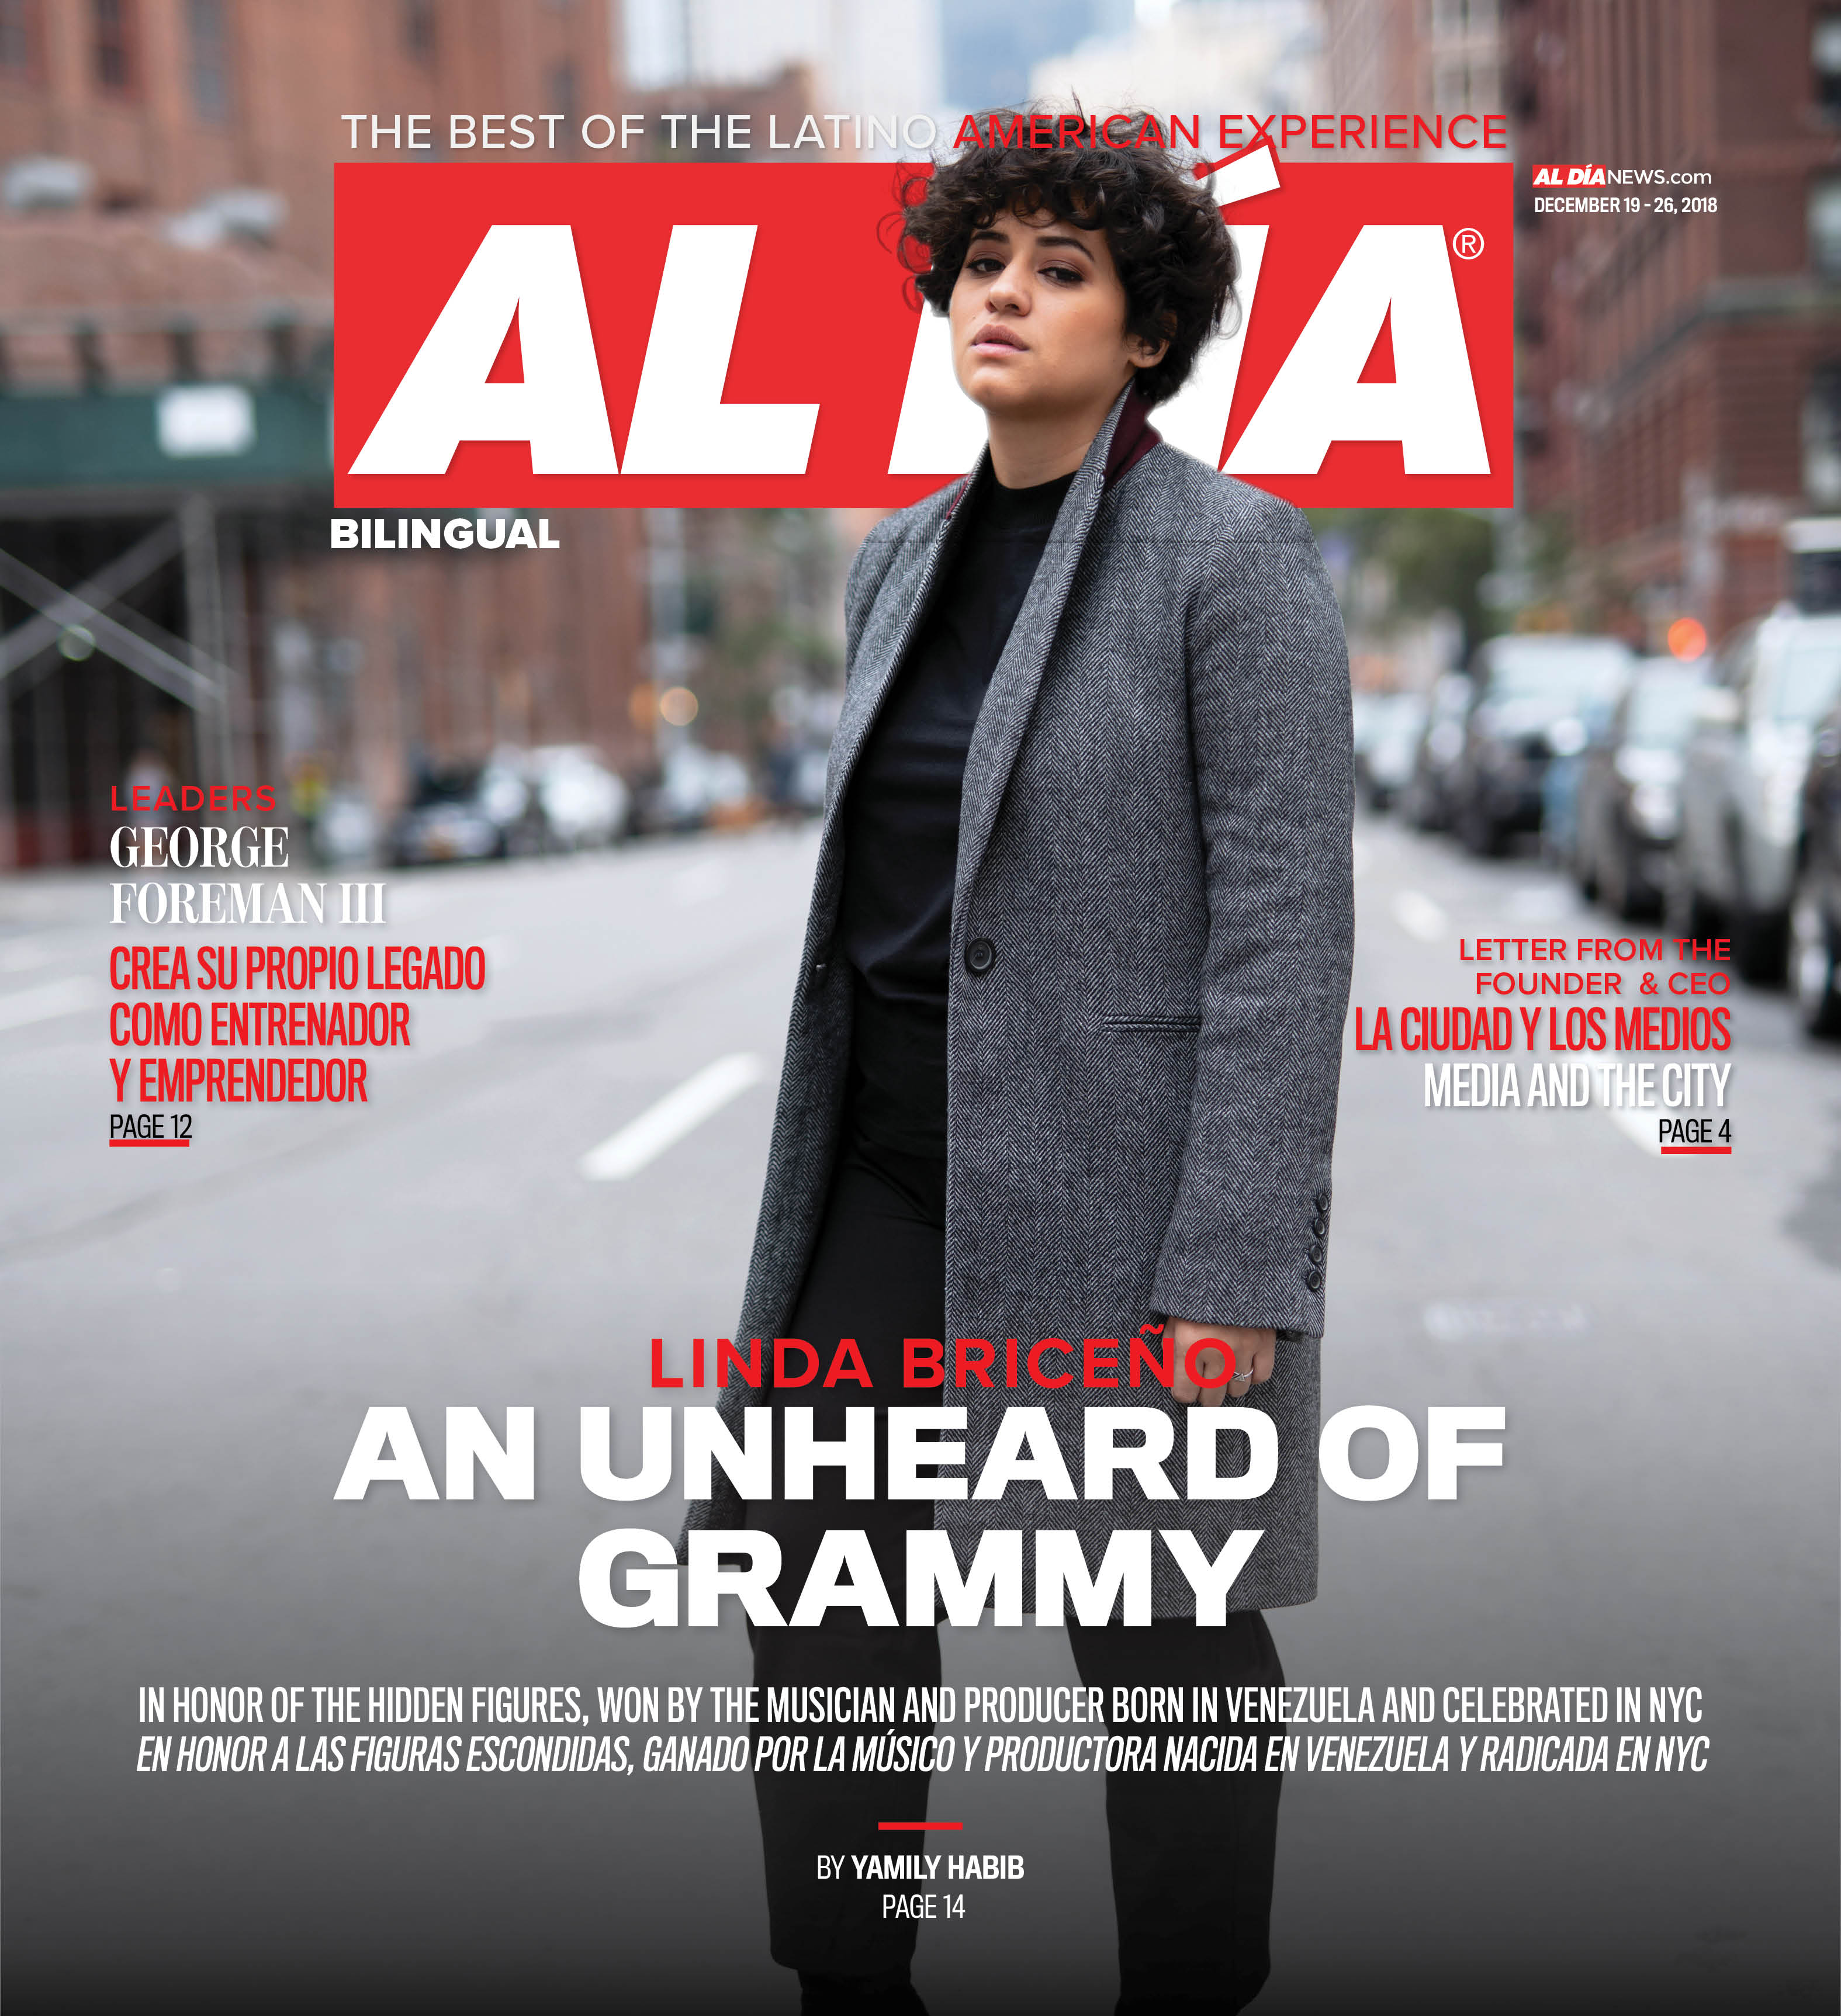 AL DIA News Print Edition December 19 - 26, 2018